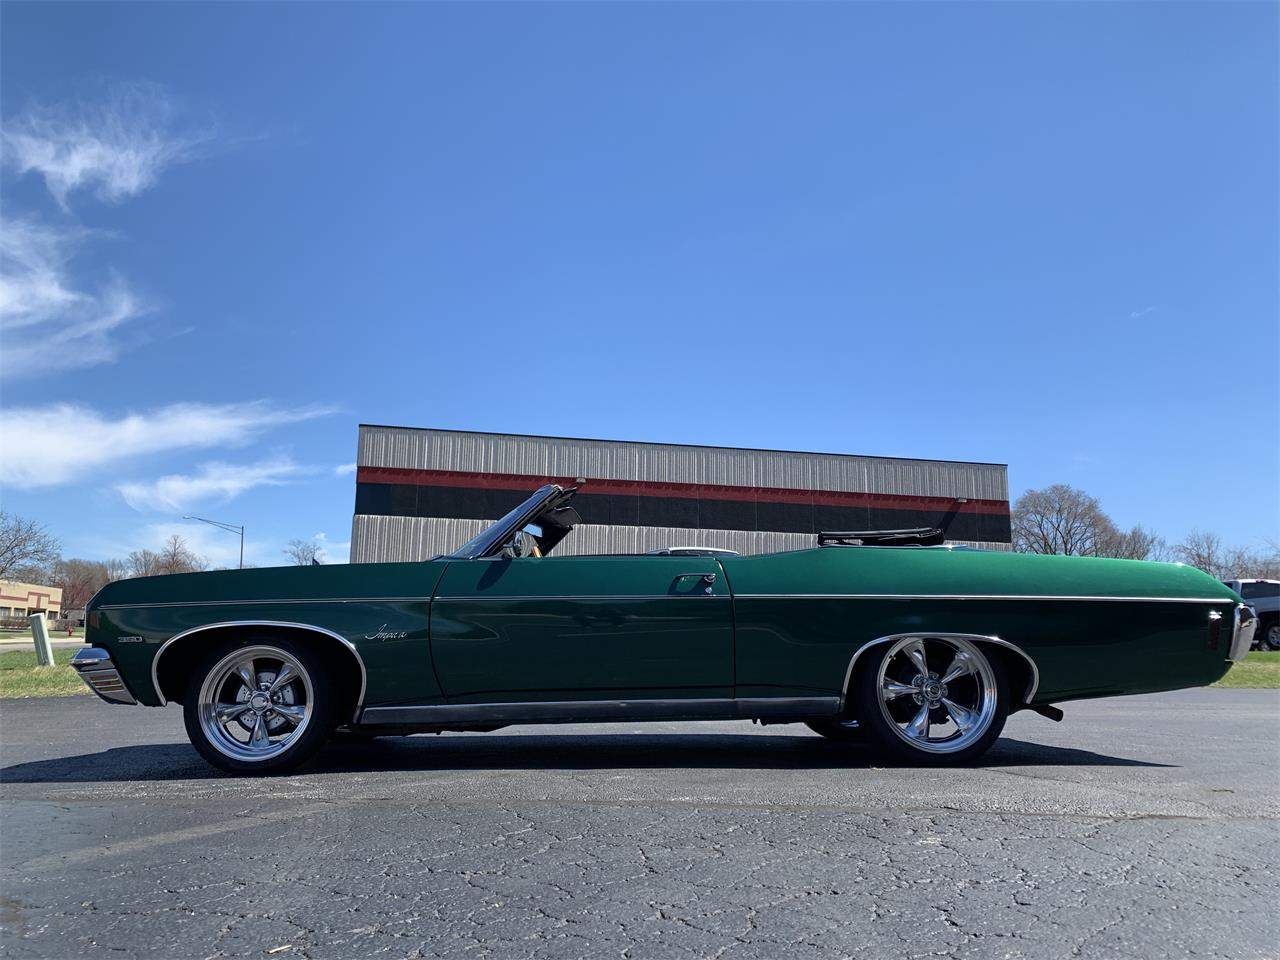 Large Picture of 1970 Chevrolet Impala - $24,995.00 - PUOX